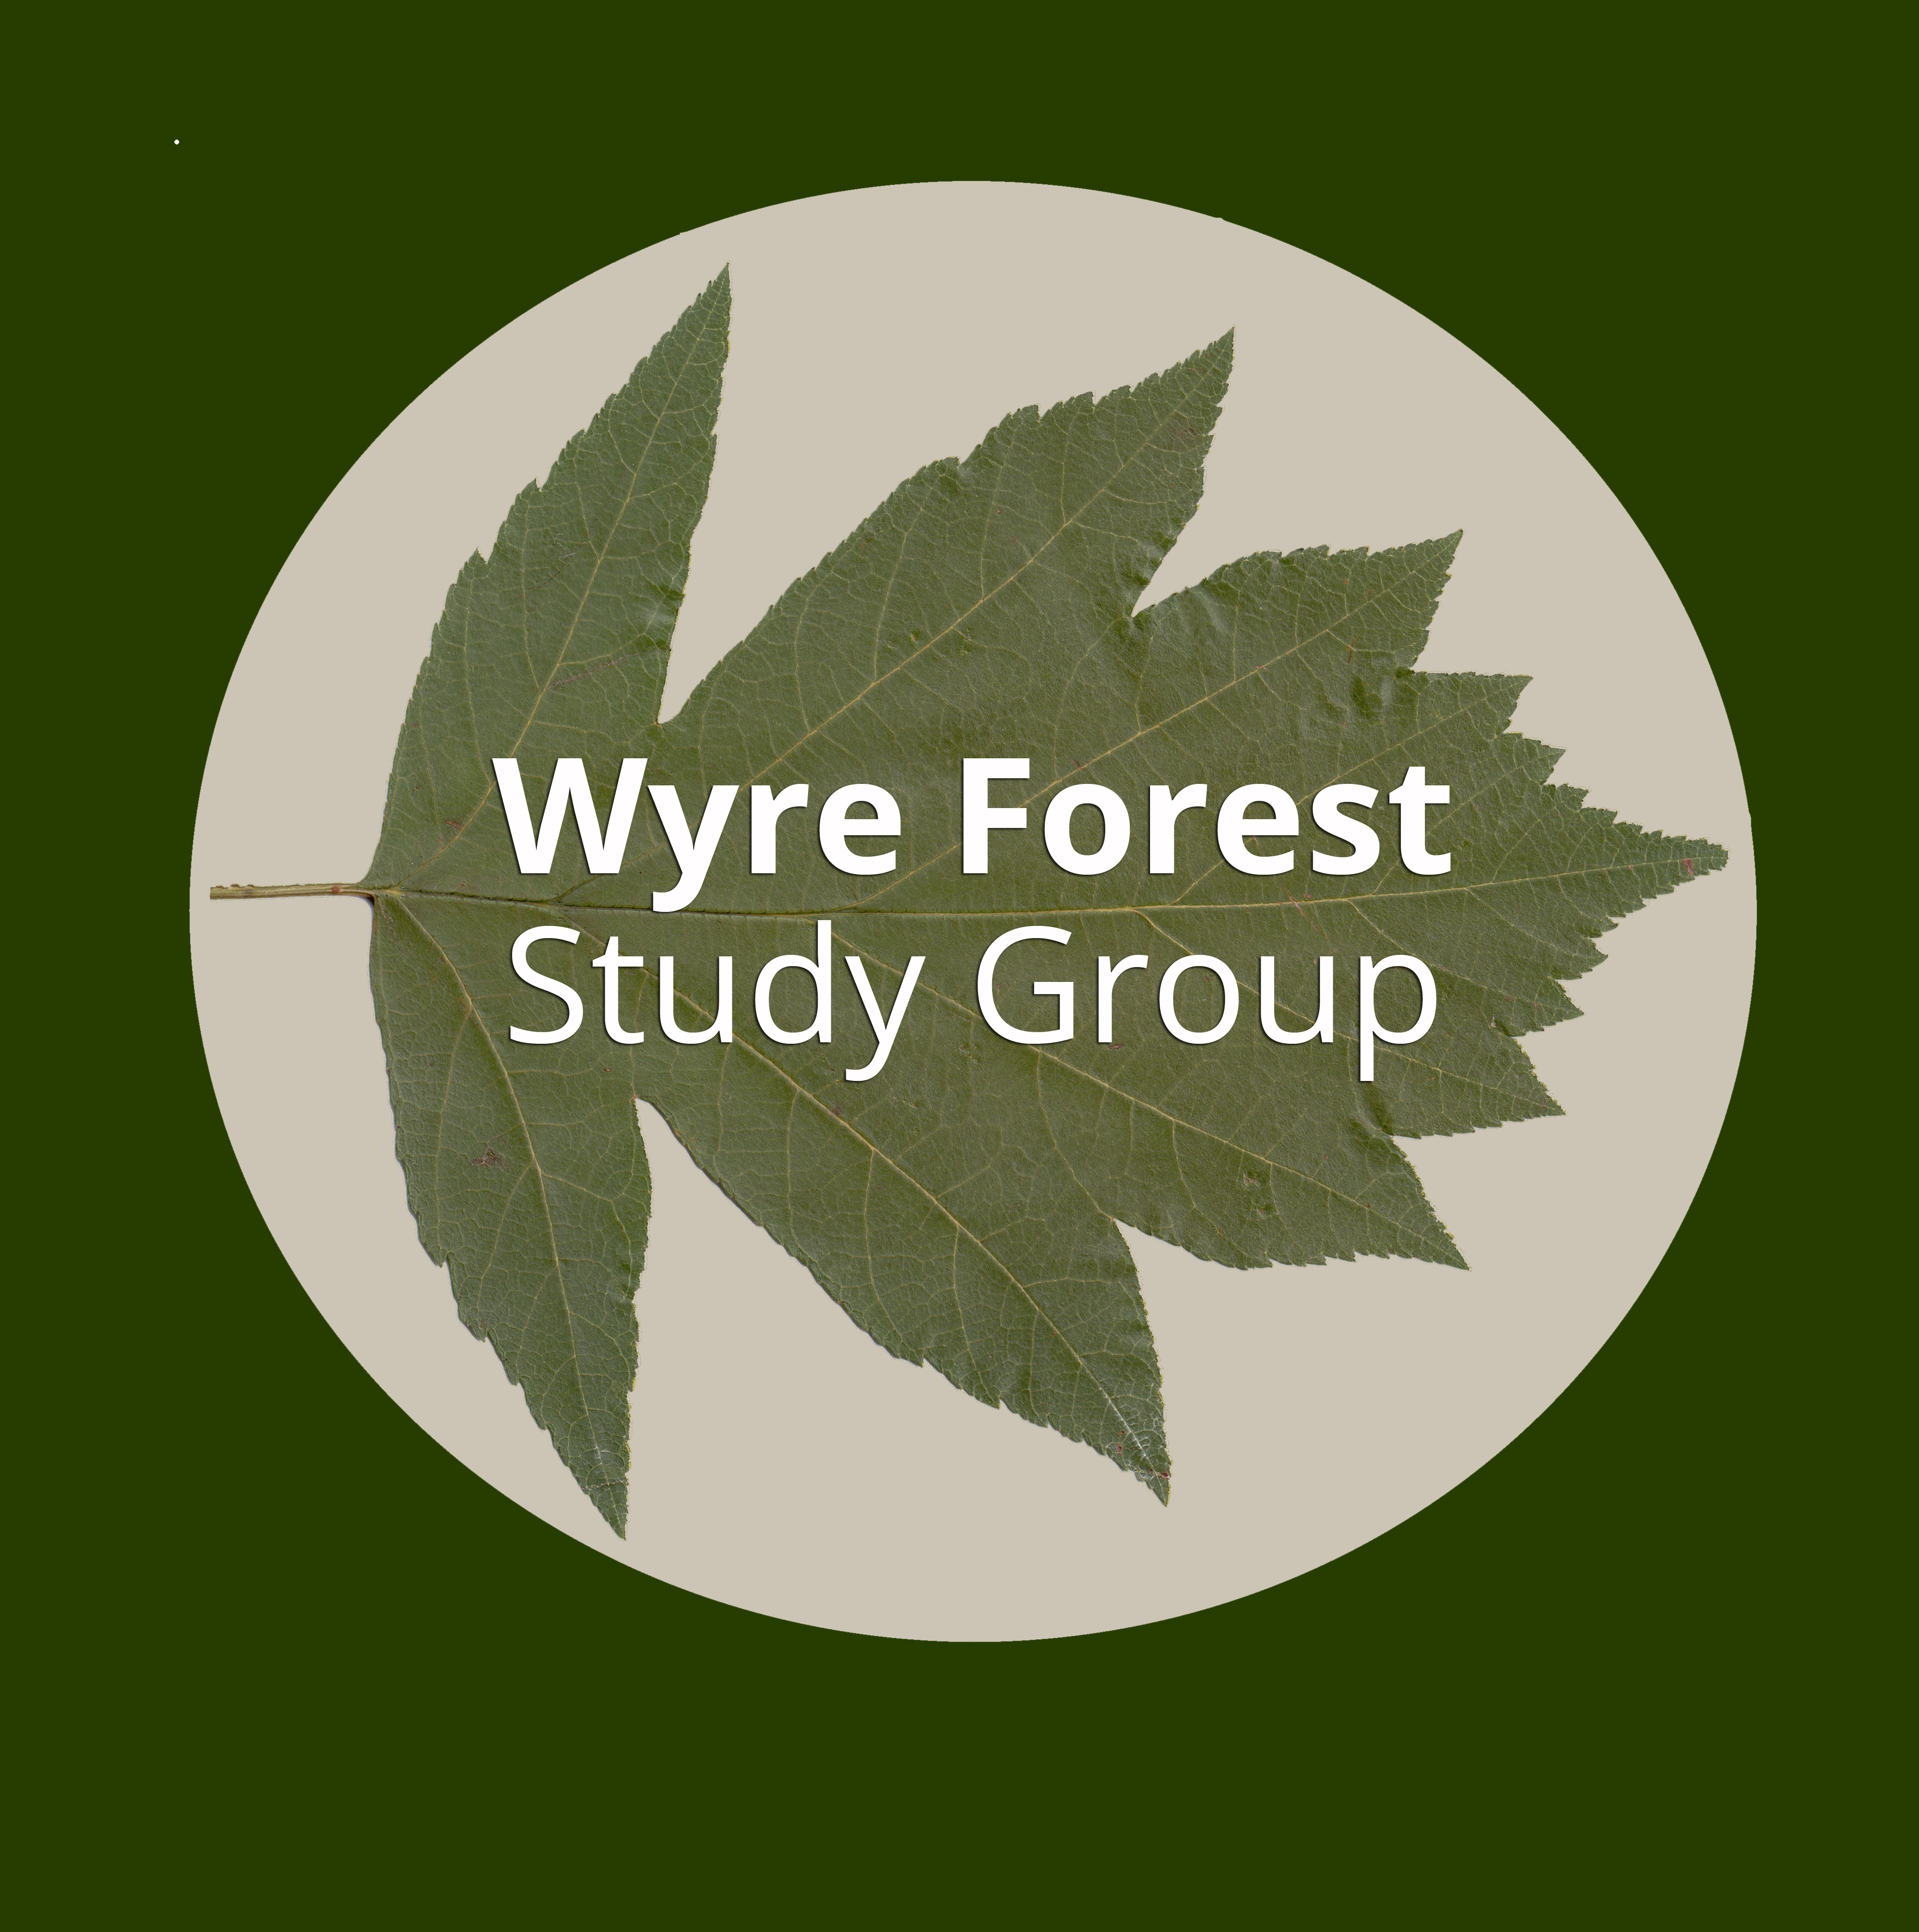 Wyre Forest Study Group